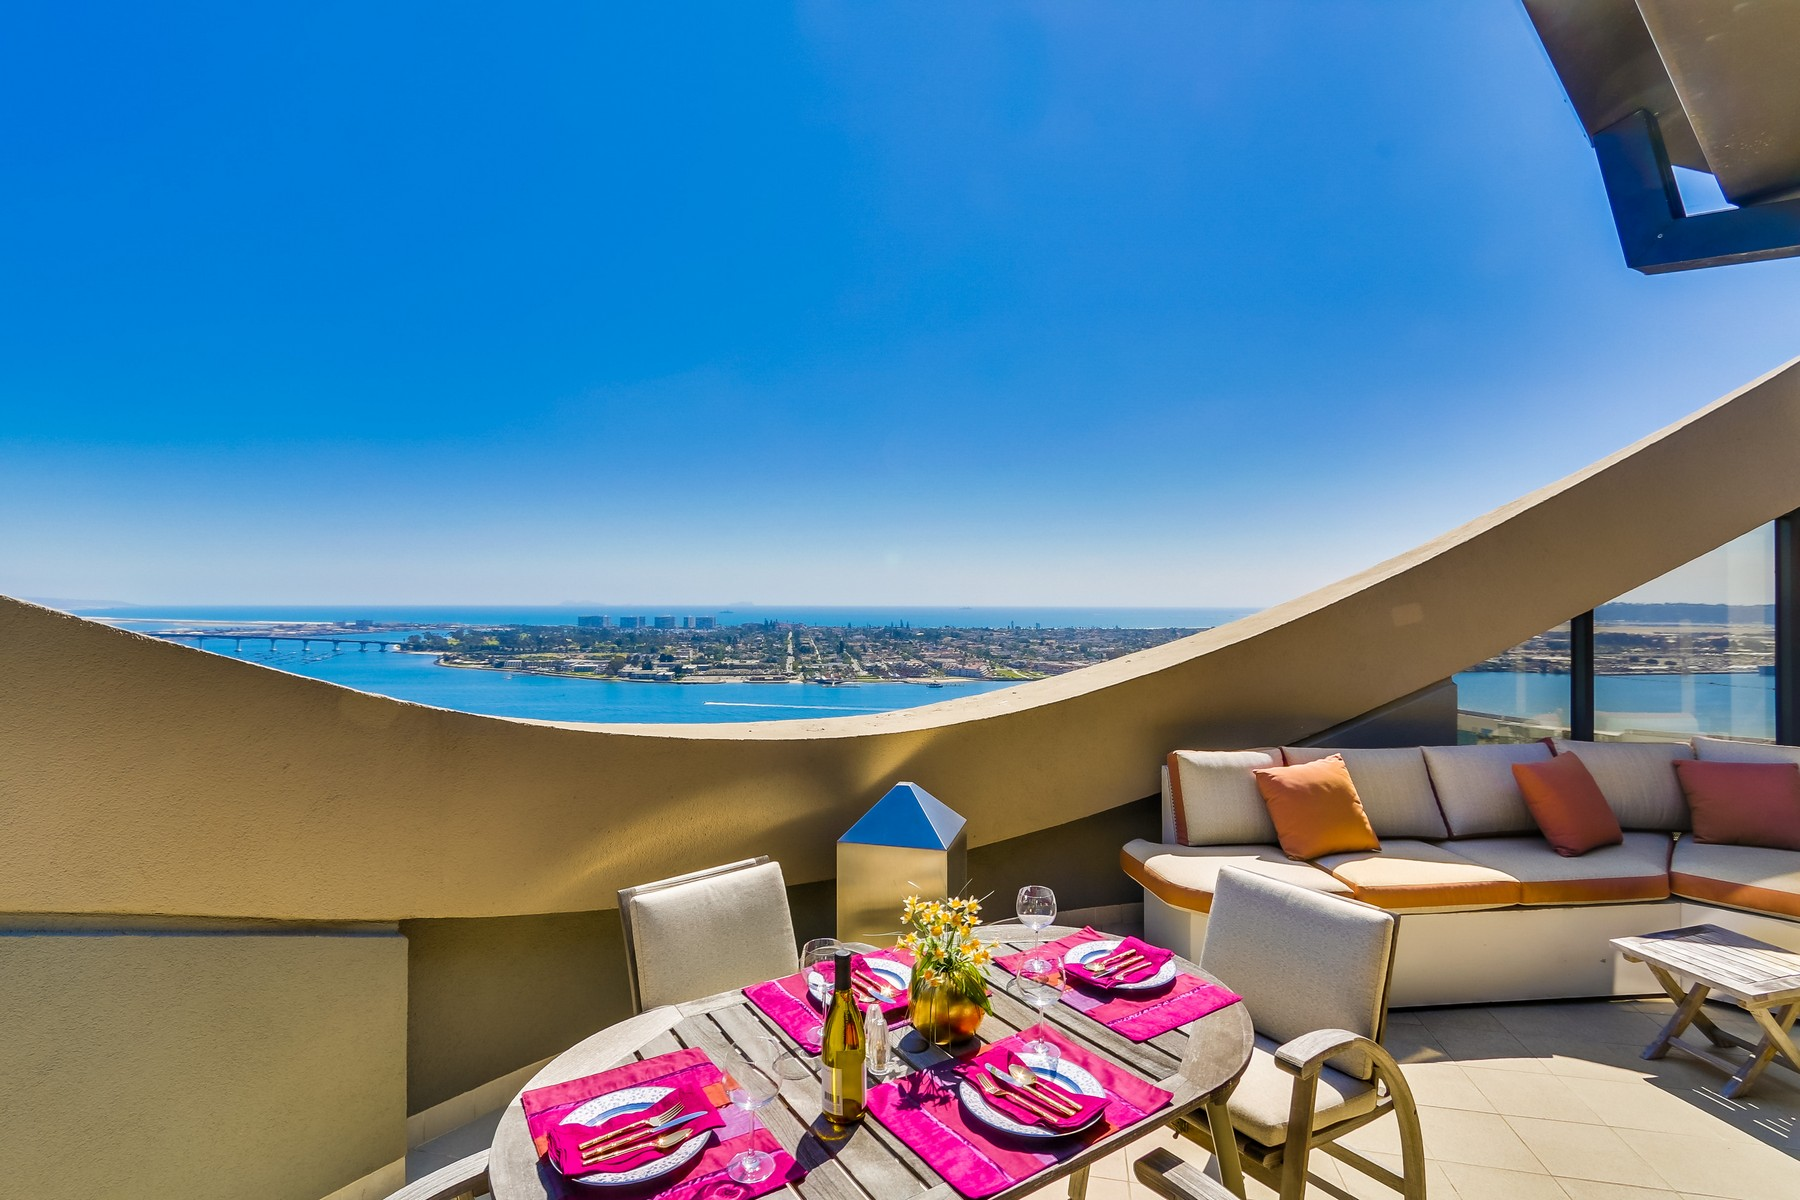 Condominium for Sale at Harbor Club 200 Harbor Drive 3901 Marina, San Diego, California, 92101 United States